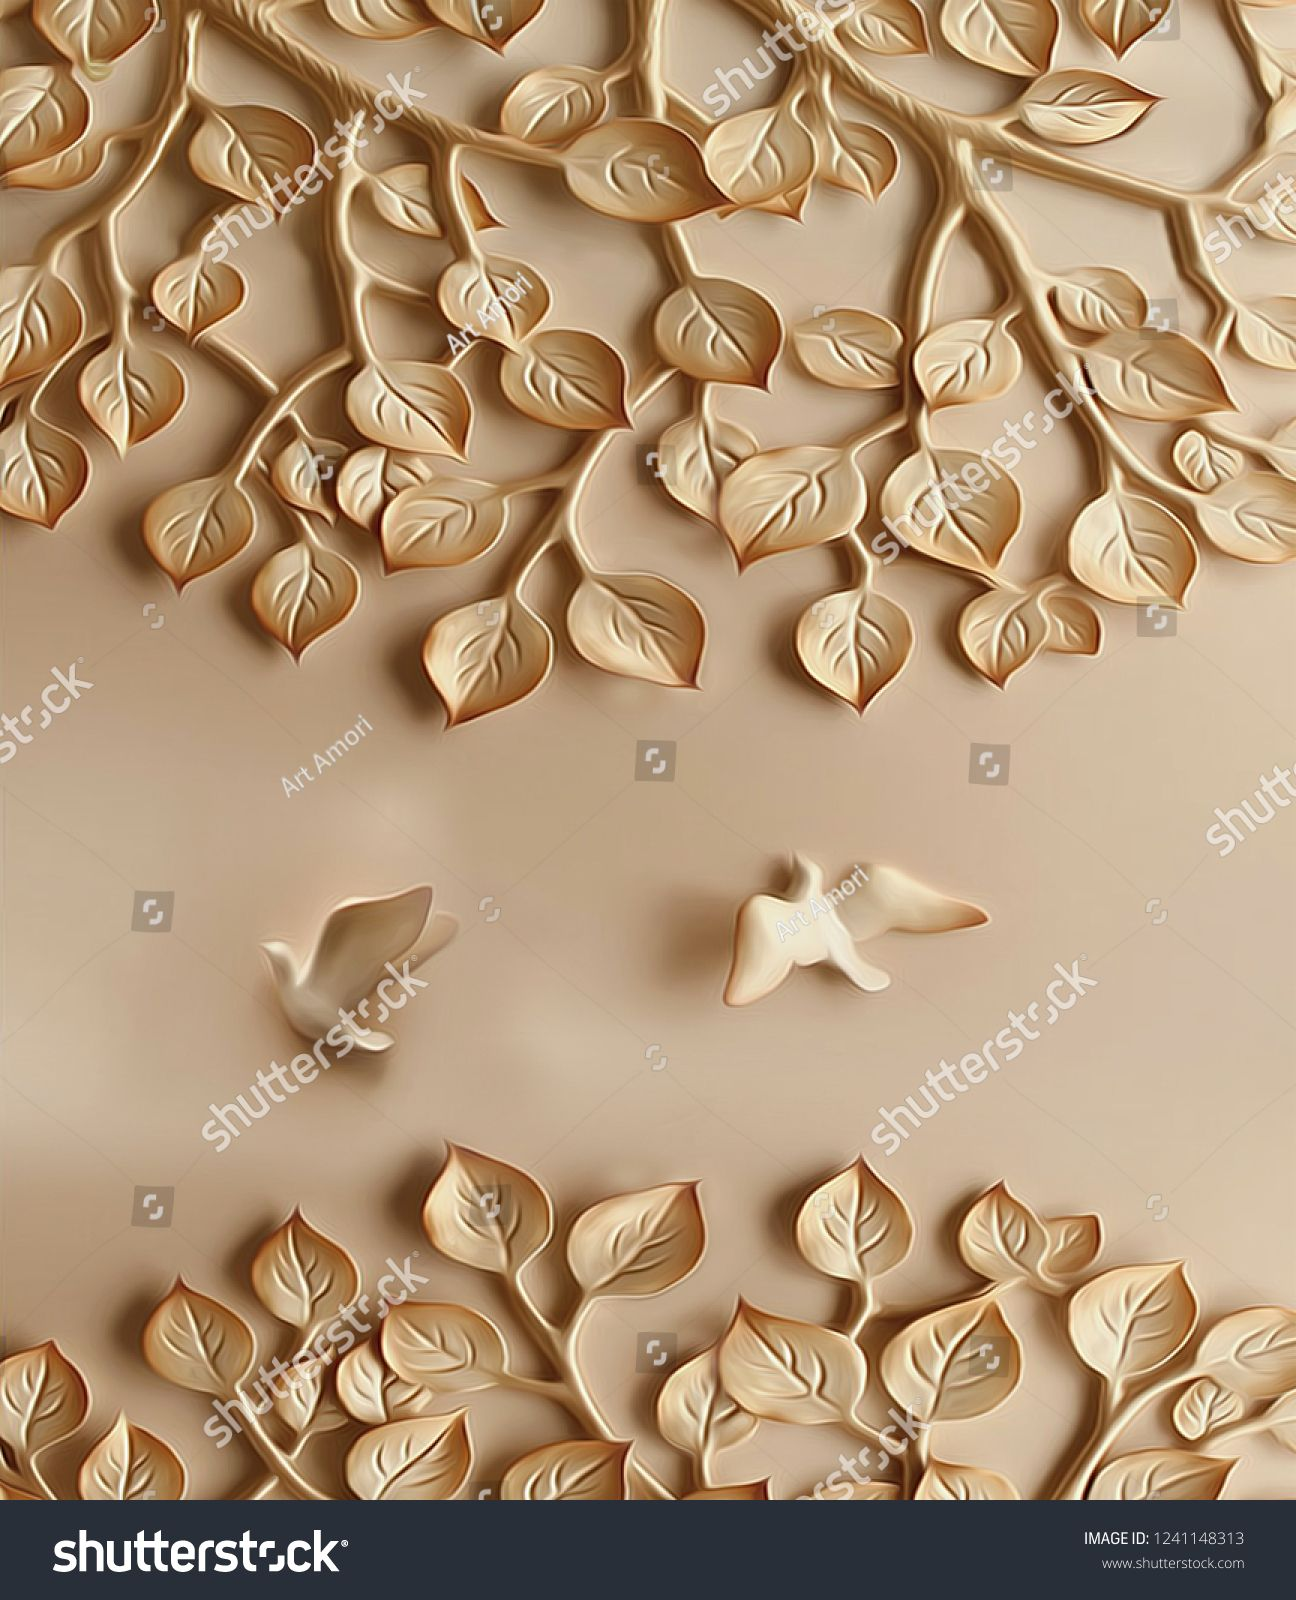 Brown Emboss Tree Leaves And Birds On Plane Background 3d Wallpaper Tree Leaves Brown Emboss 3d Wallpaper 3d Wallpaper Tree Wallpaper